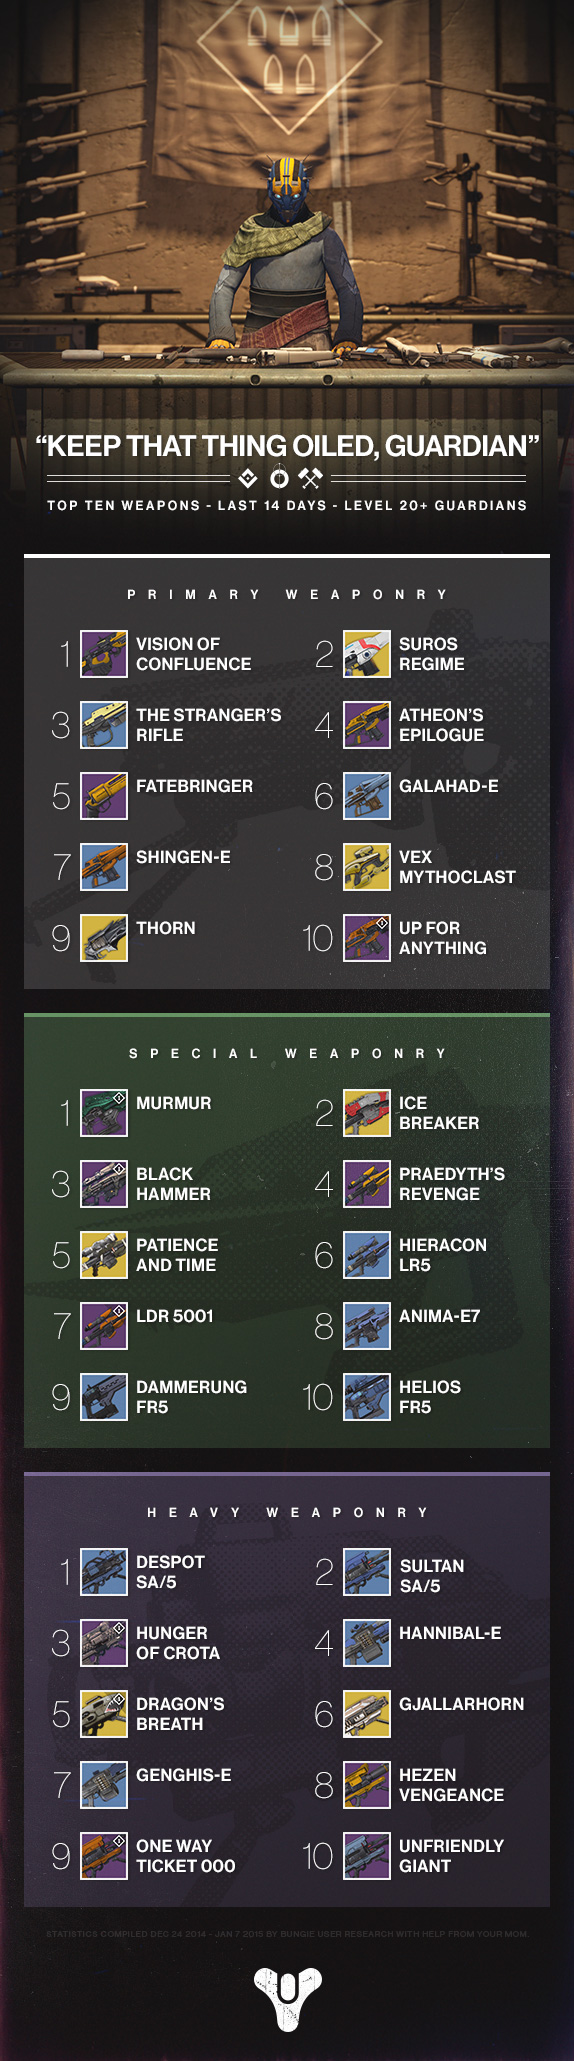 This is Destiny's most used weaponry